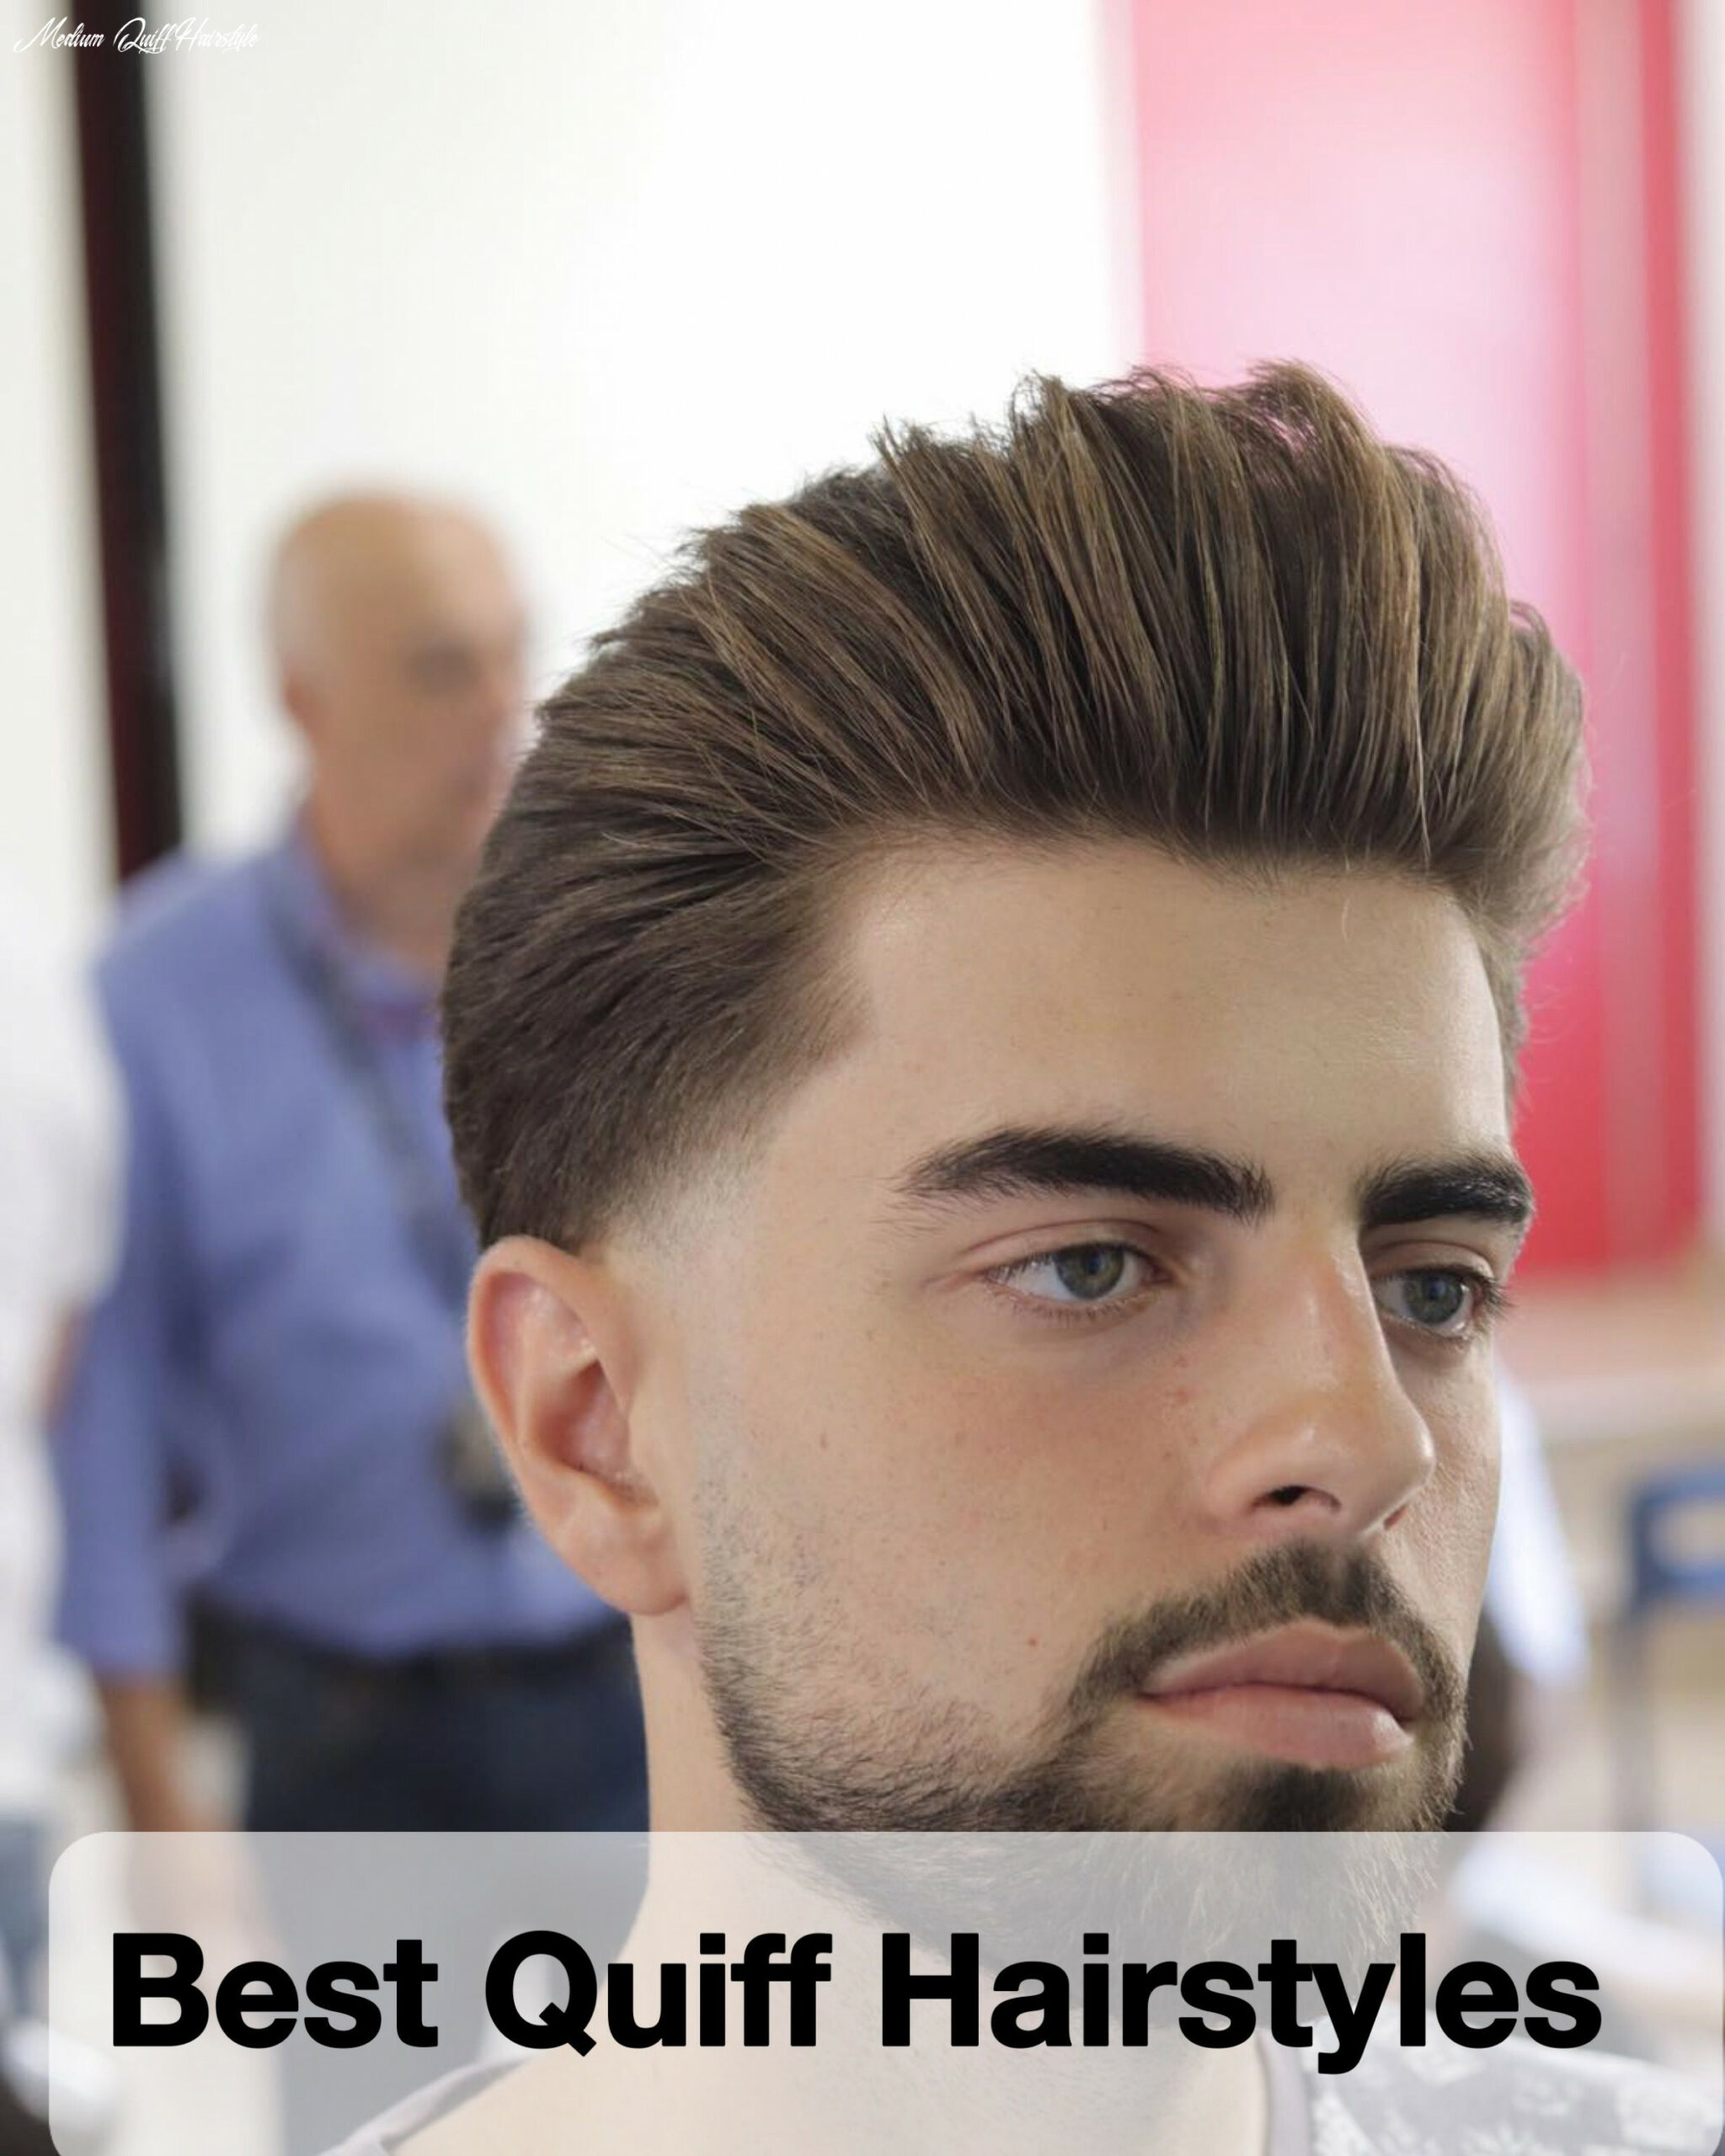 9 Quiff Hairstyles We Absolutely Love | Mens hairstyles medium ...